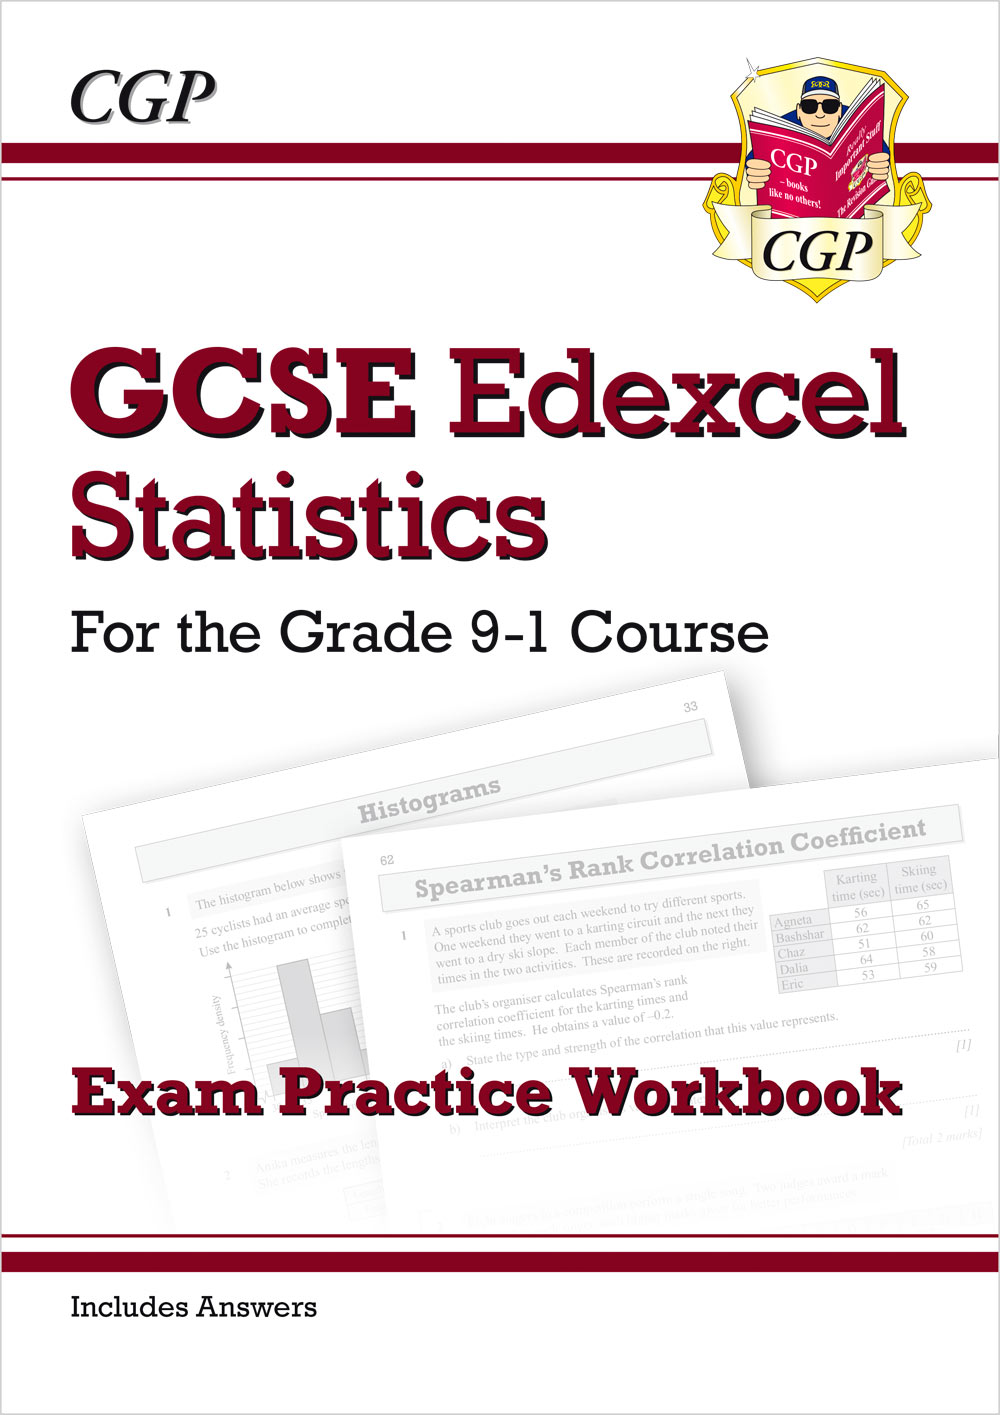 MSXQ41 - New GCSE Statistics Edexcel Exam Practice Workbook - for the Grade 9-1 Course (includes Ans